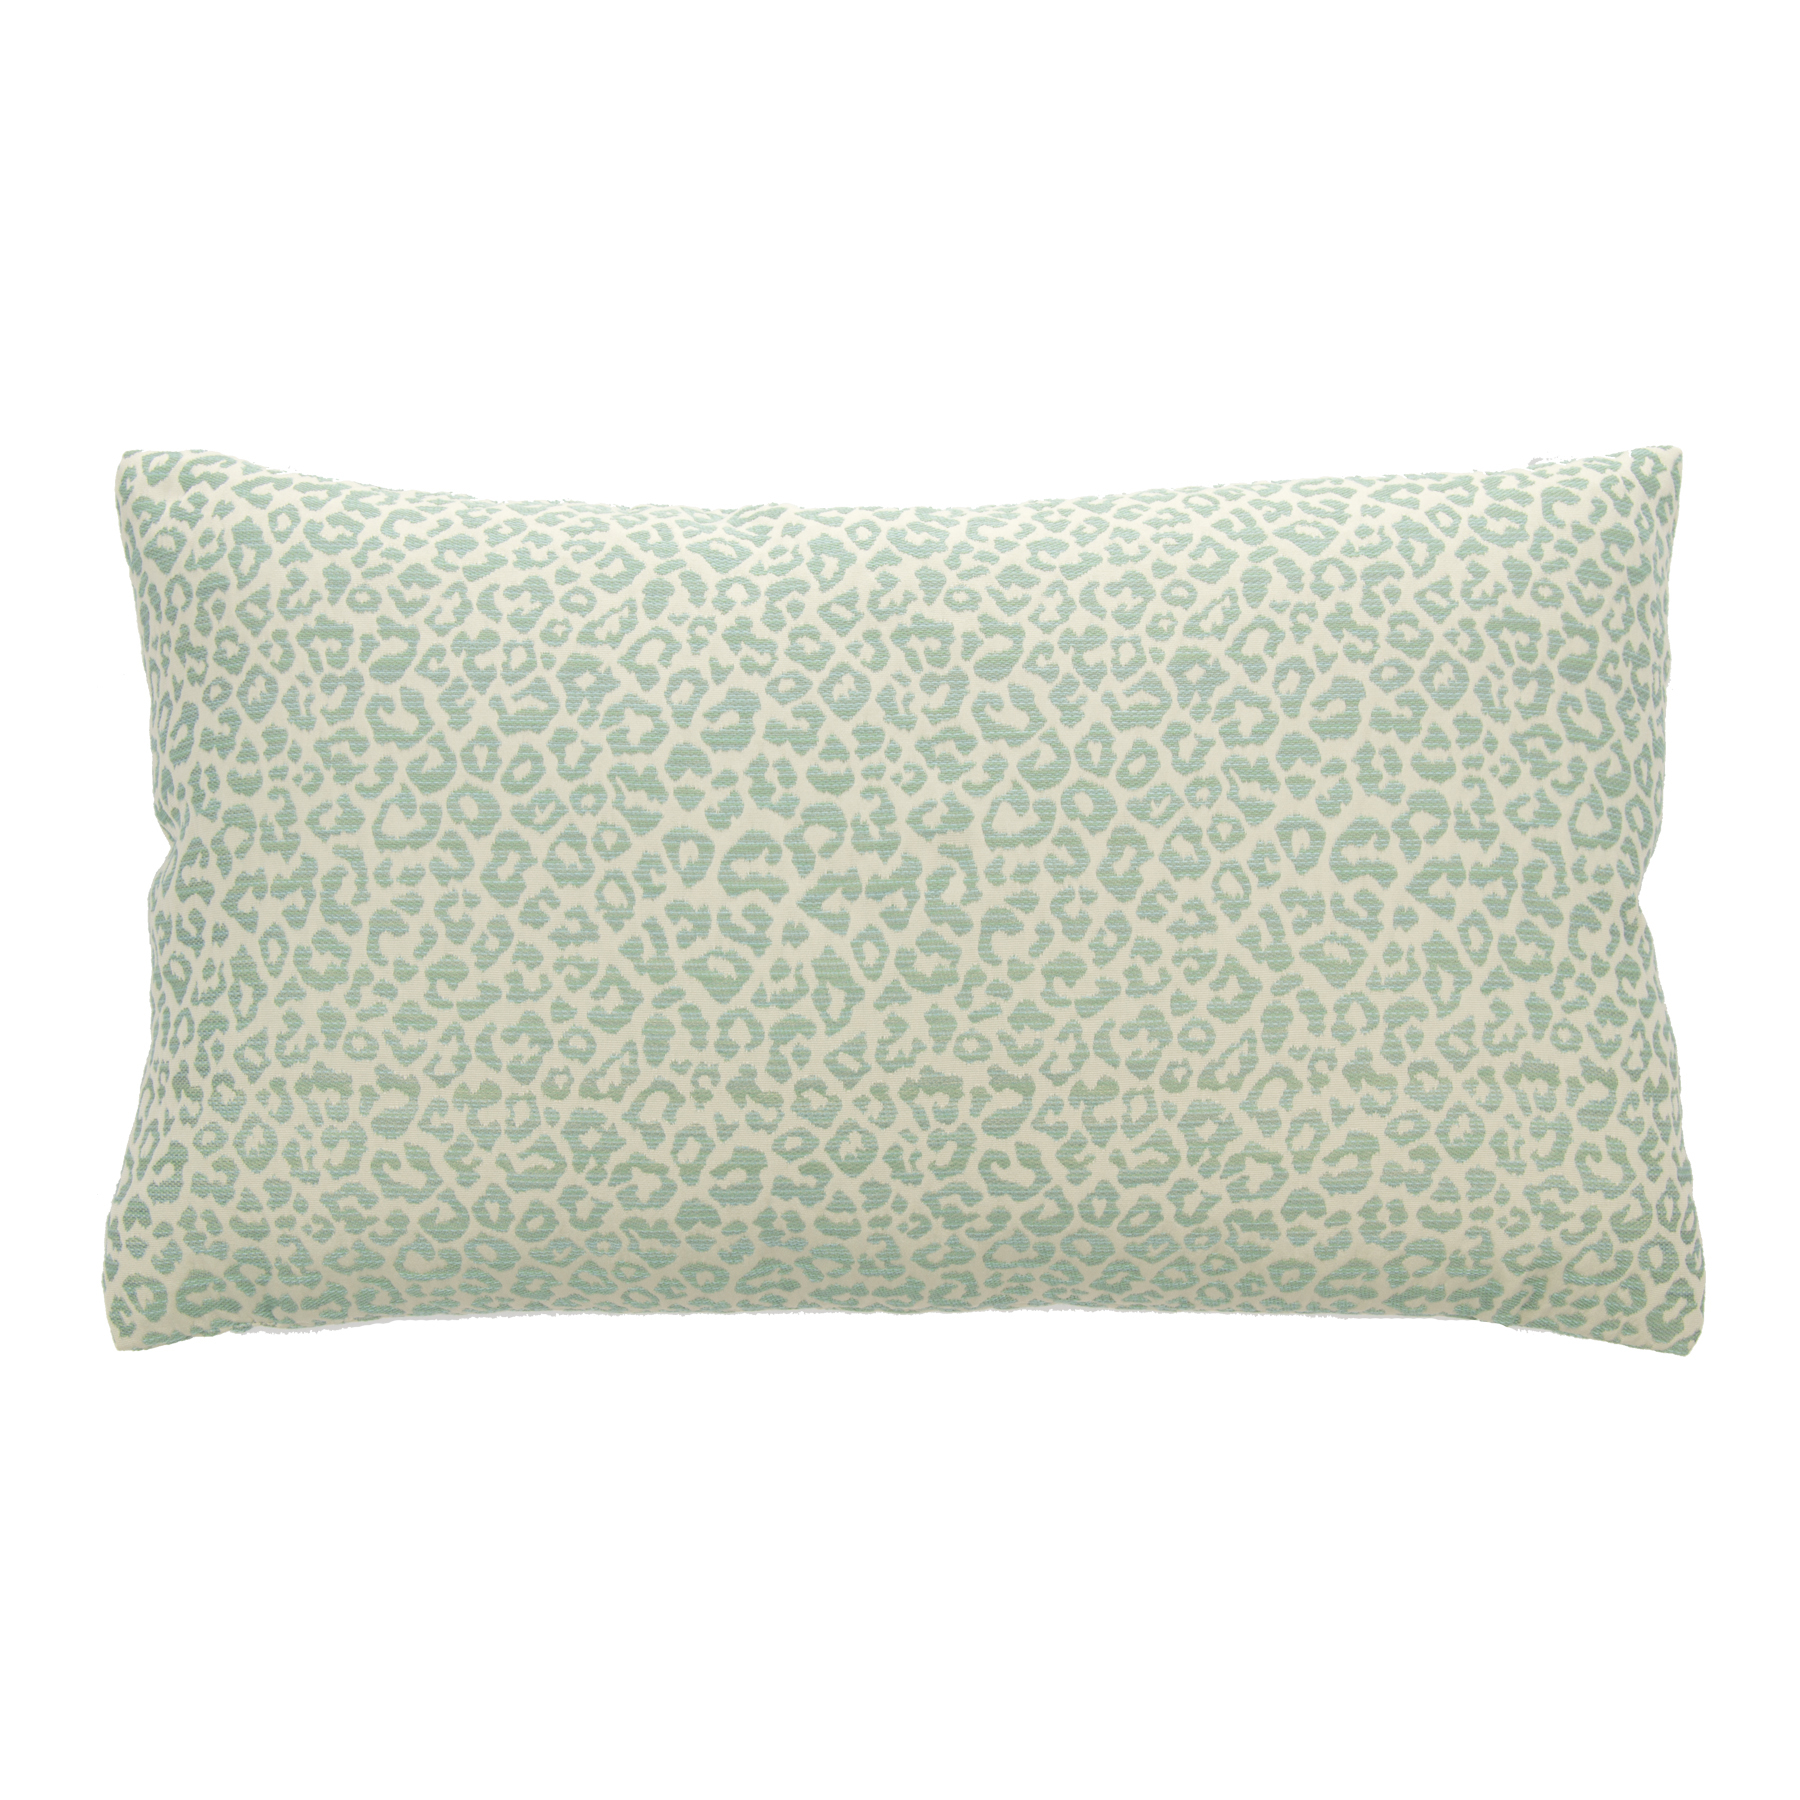 Sights Pillow 1 Turquoise